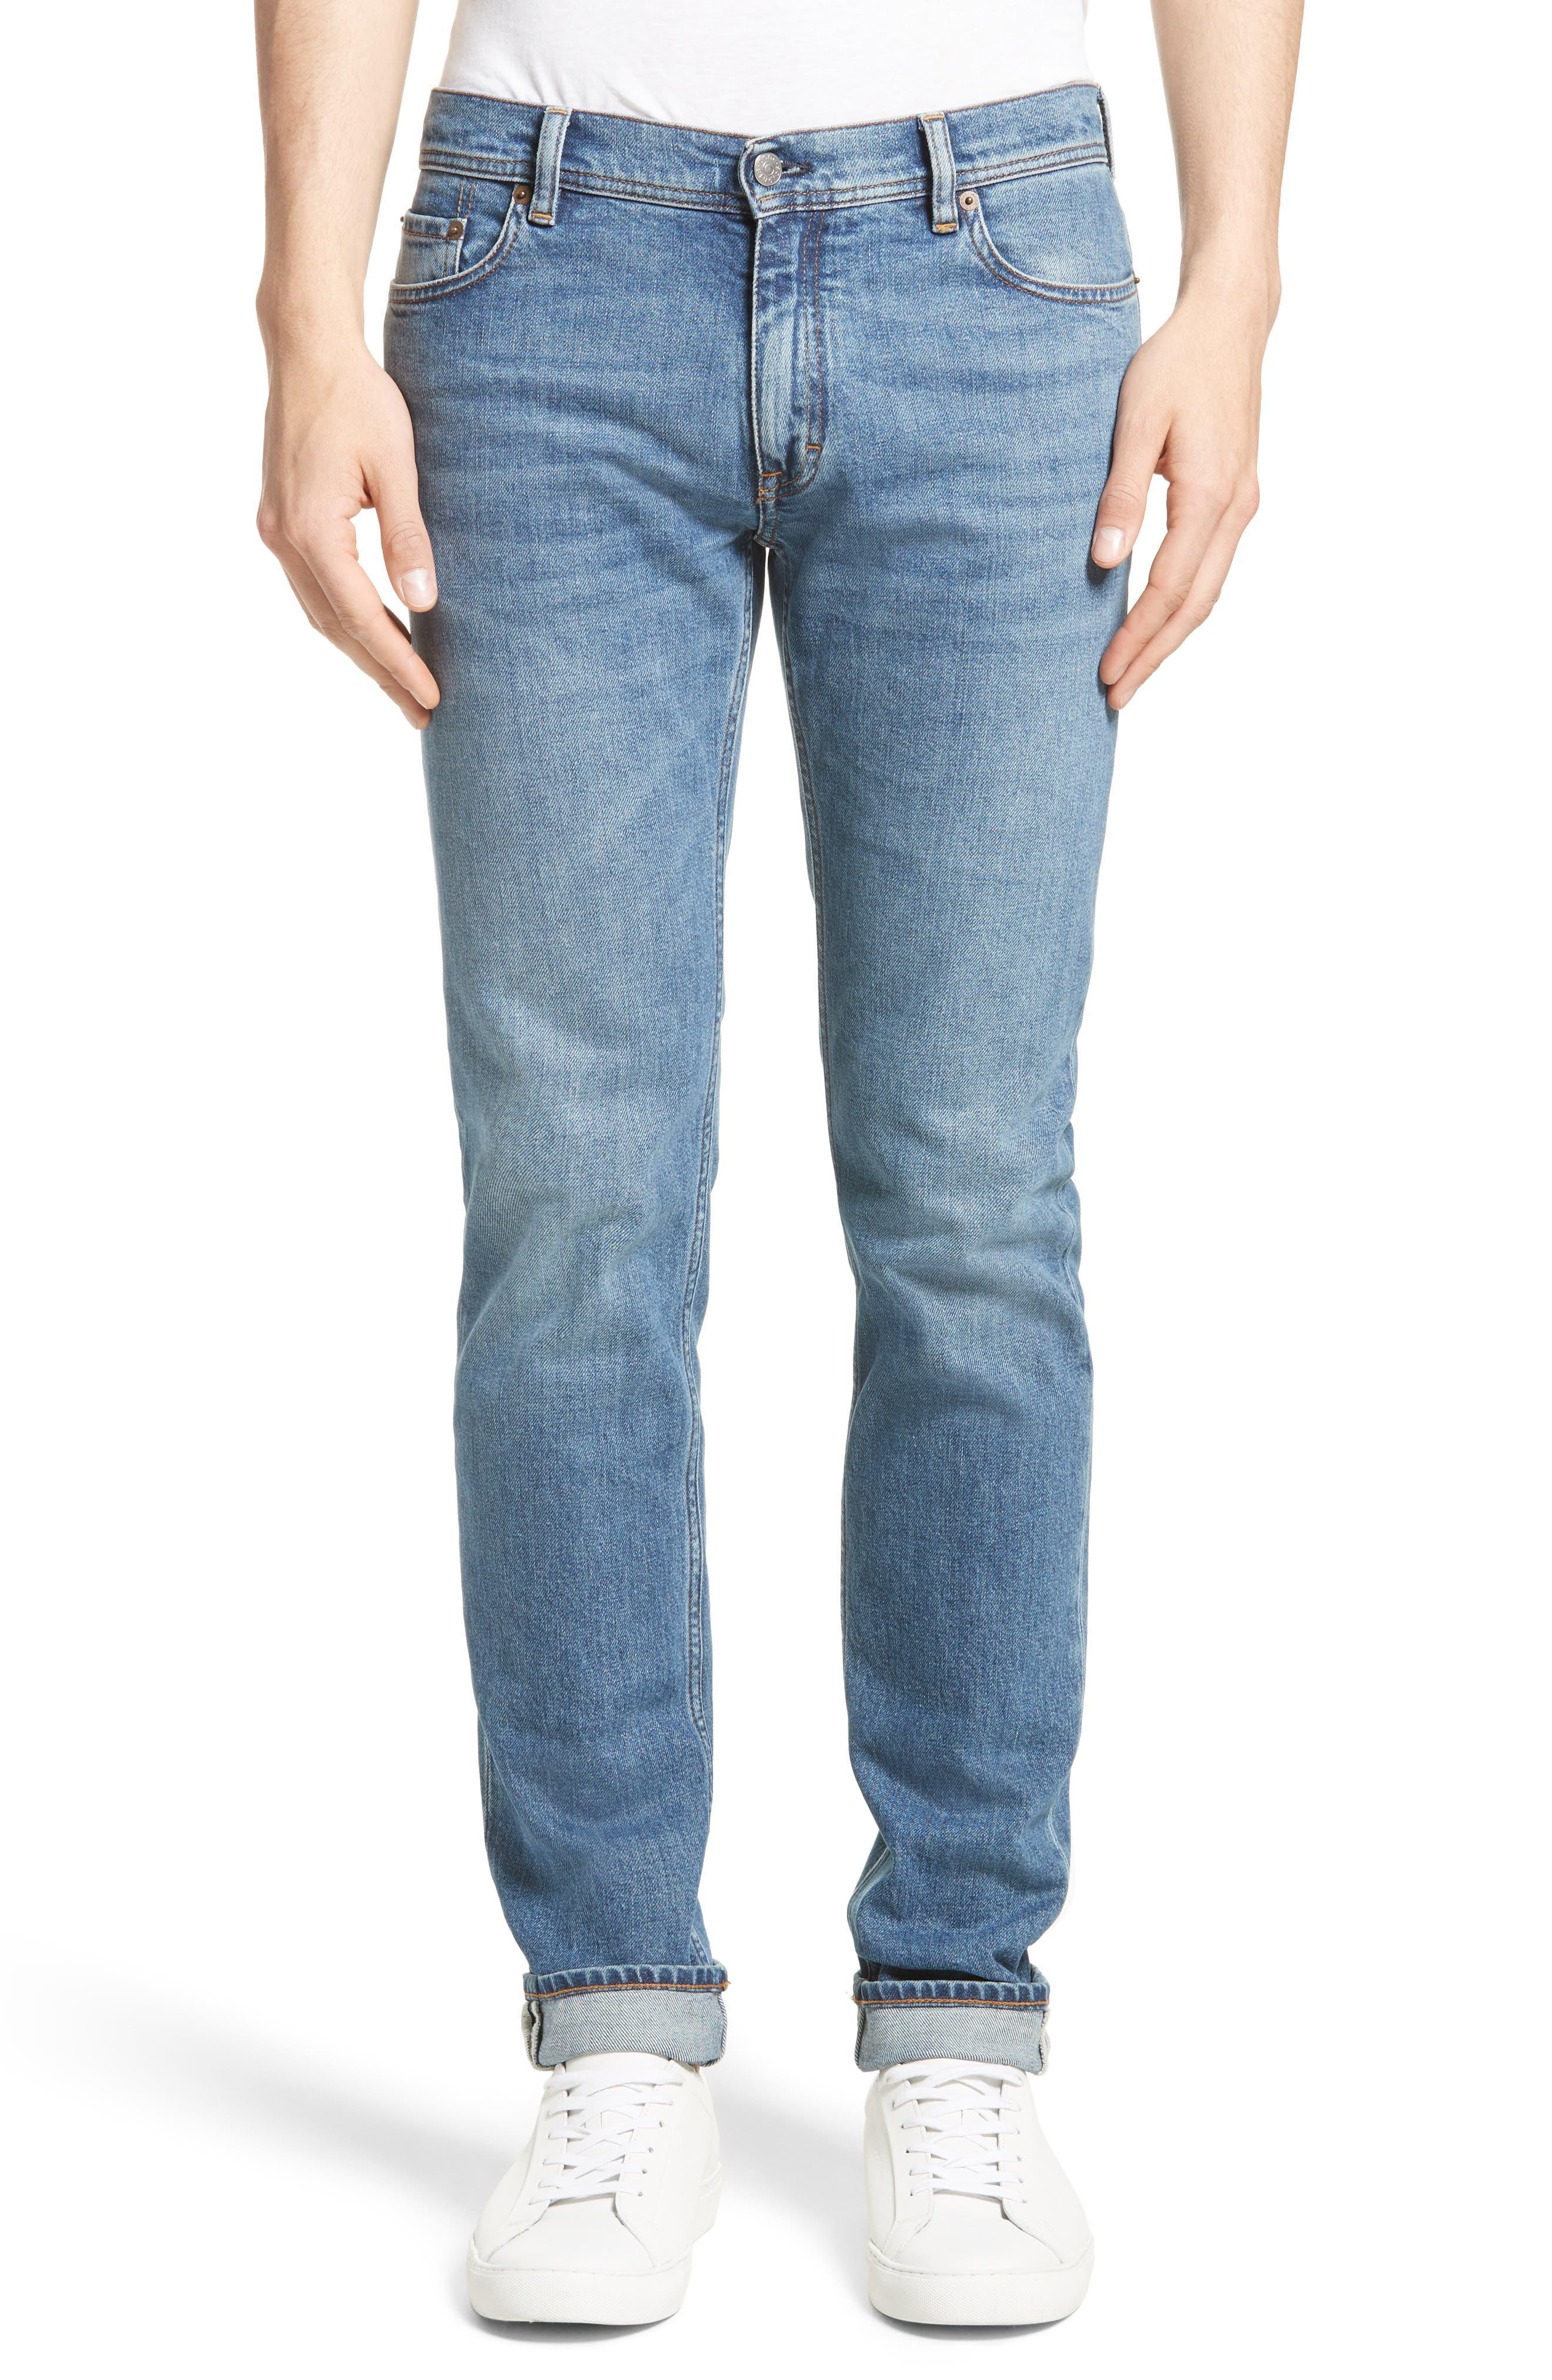 North Skinny Jeans,                         Main,                         color, Mid Blue